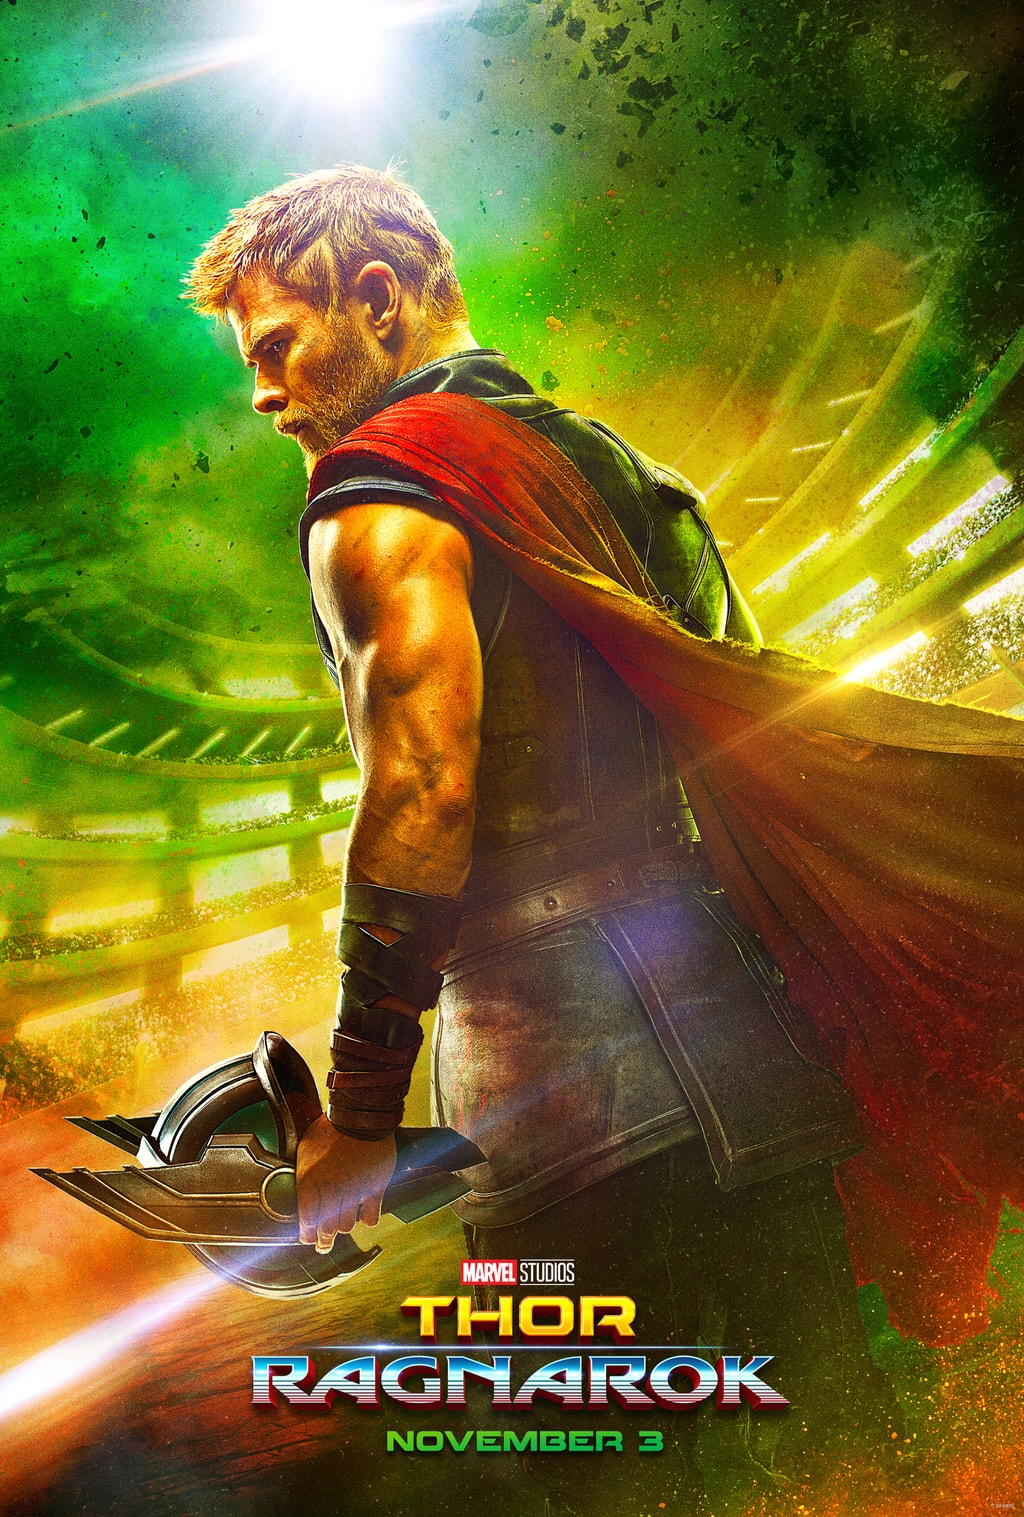 We finally have a first look at Thor Ragnarok! You may remember a few years ago when I went to the red carpet event and interviewed some of the cast of Thor The Dark World.